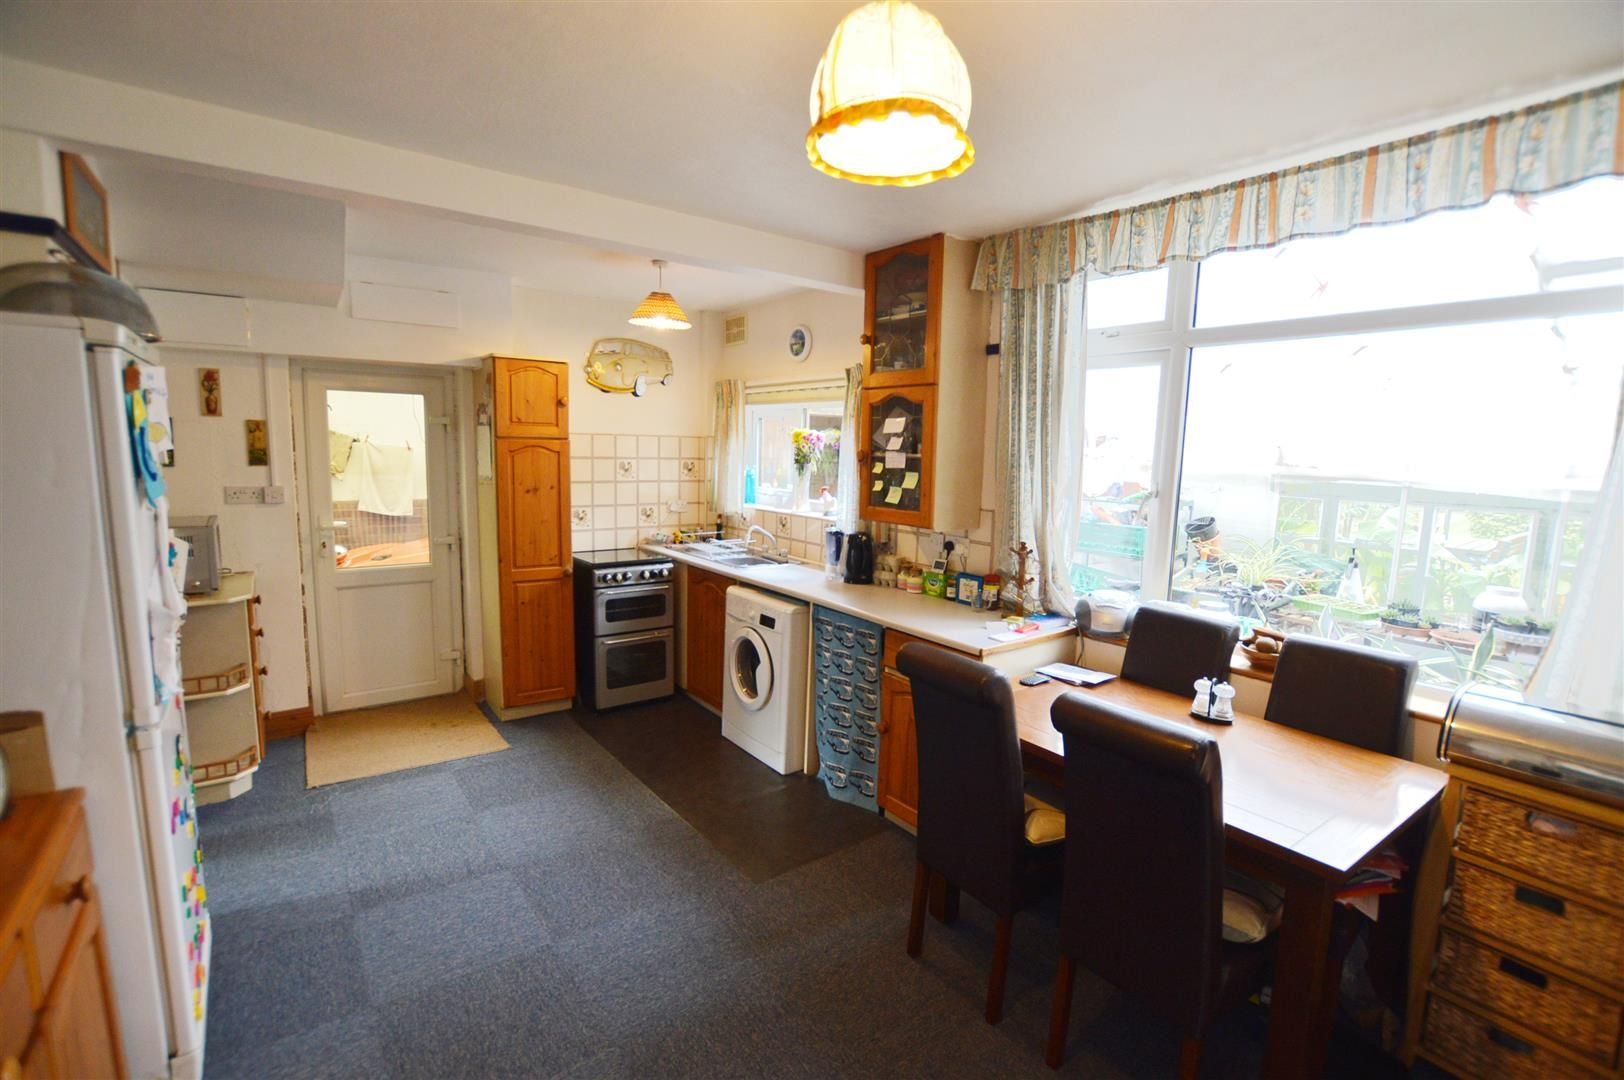 3 bed semi-detached for sale in Hereford 6